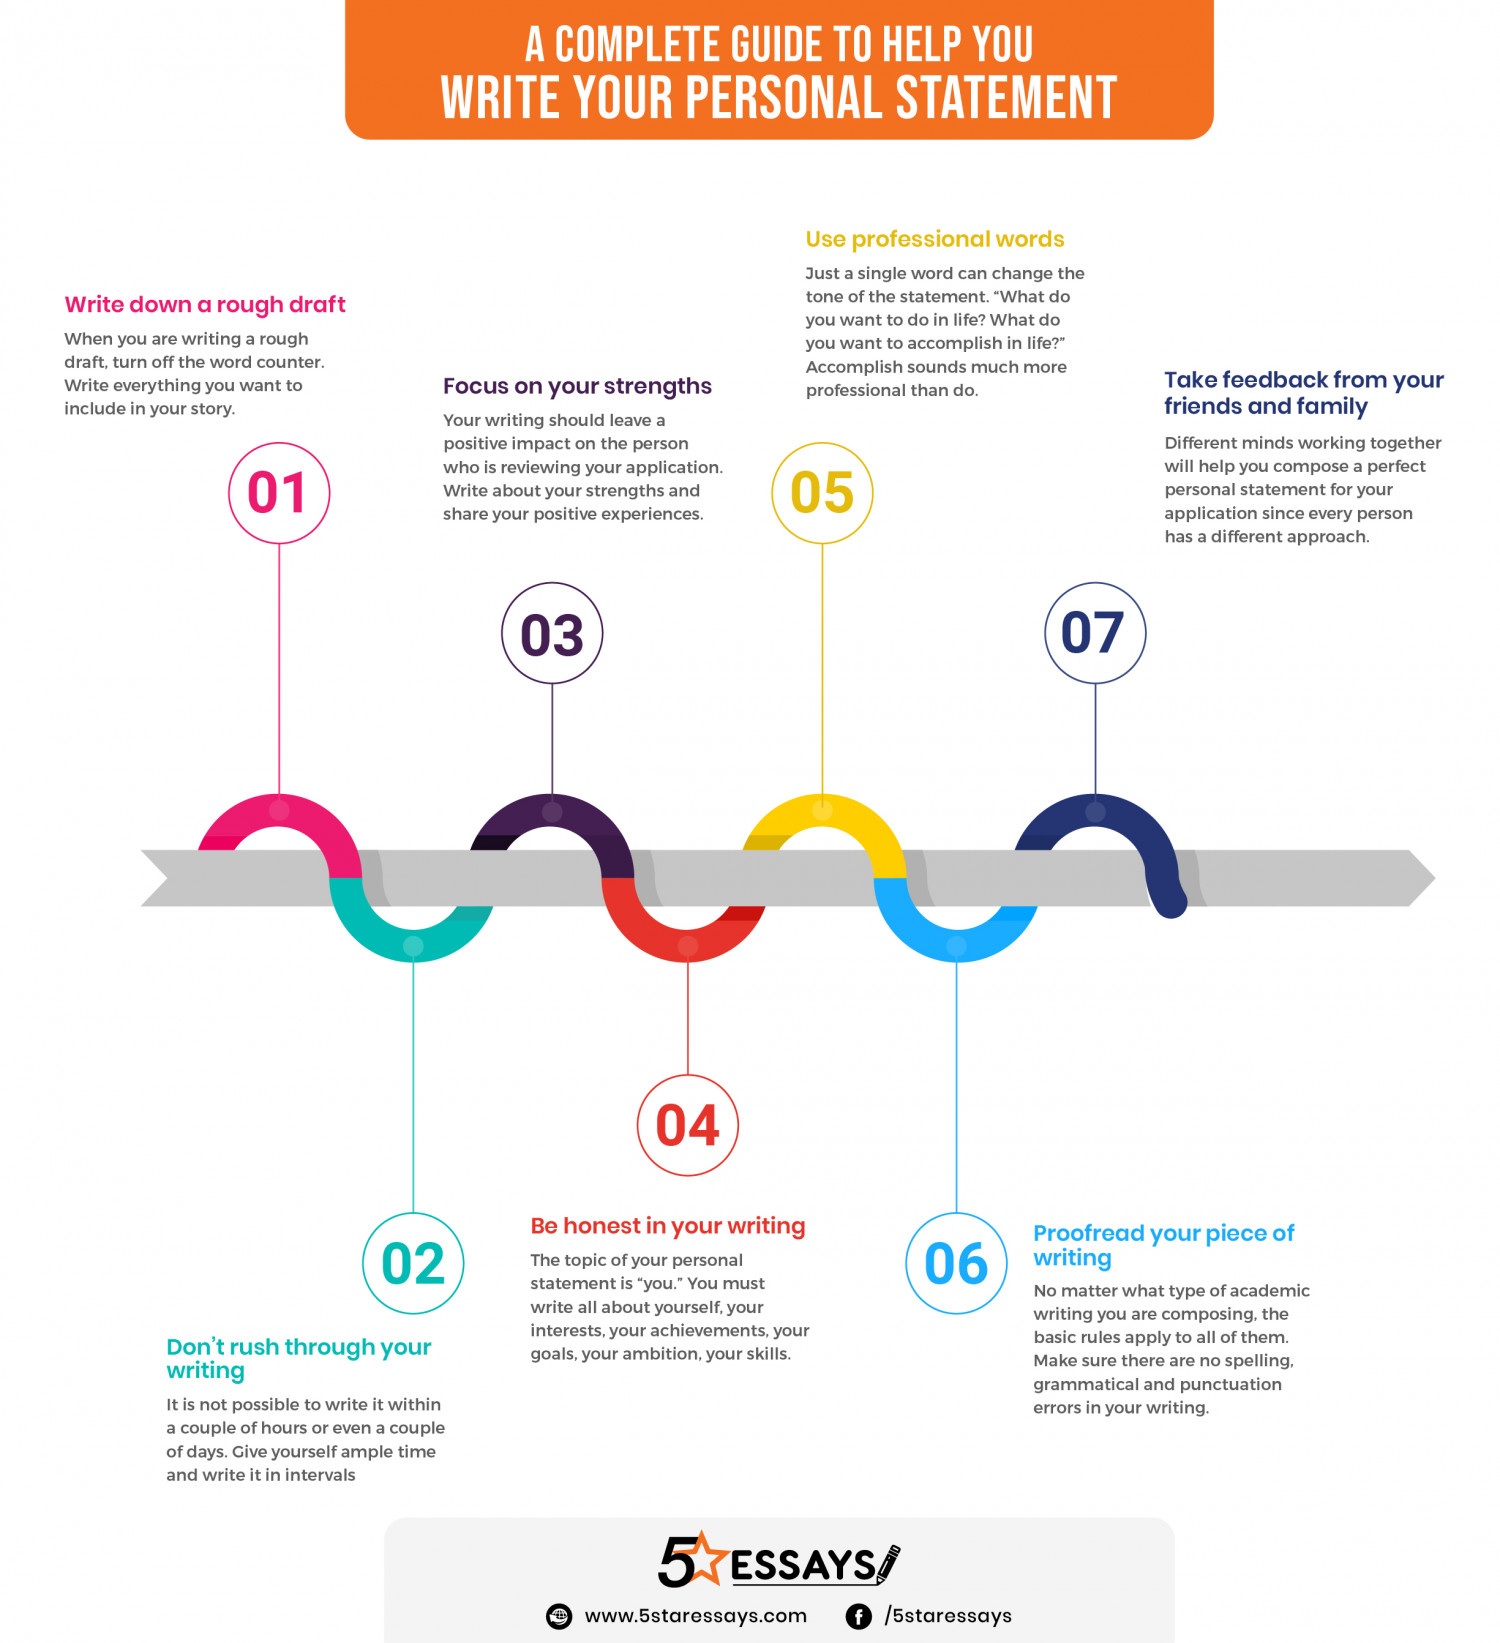 A Complete Guide To Help You Write Your Personal Statement Infographic